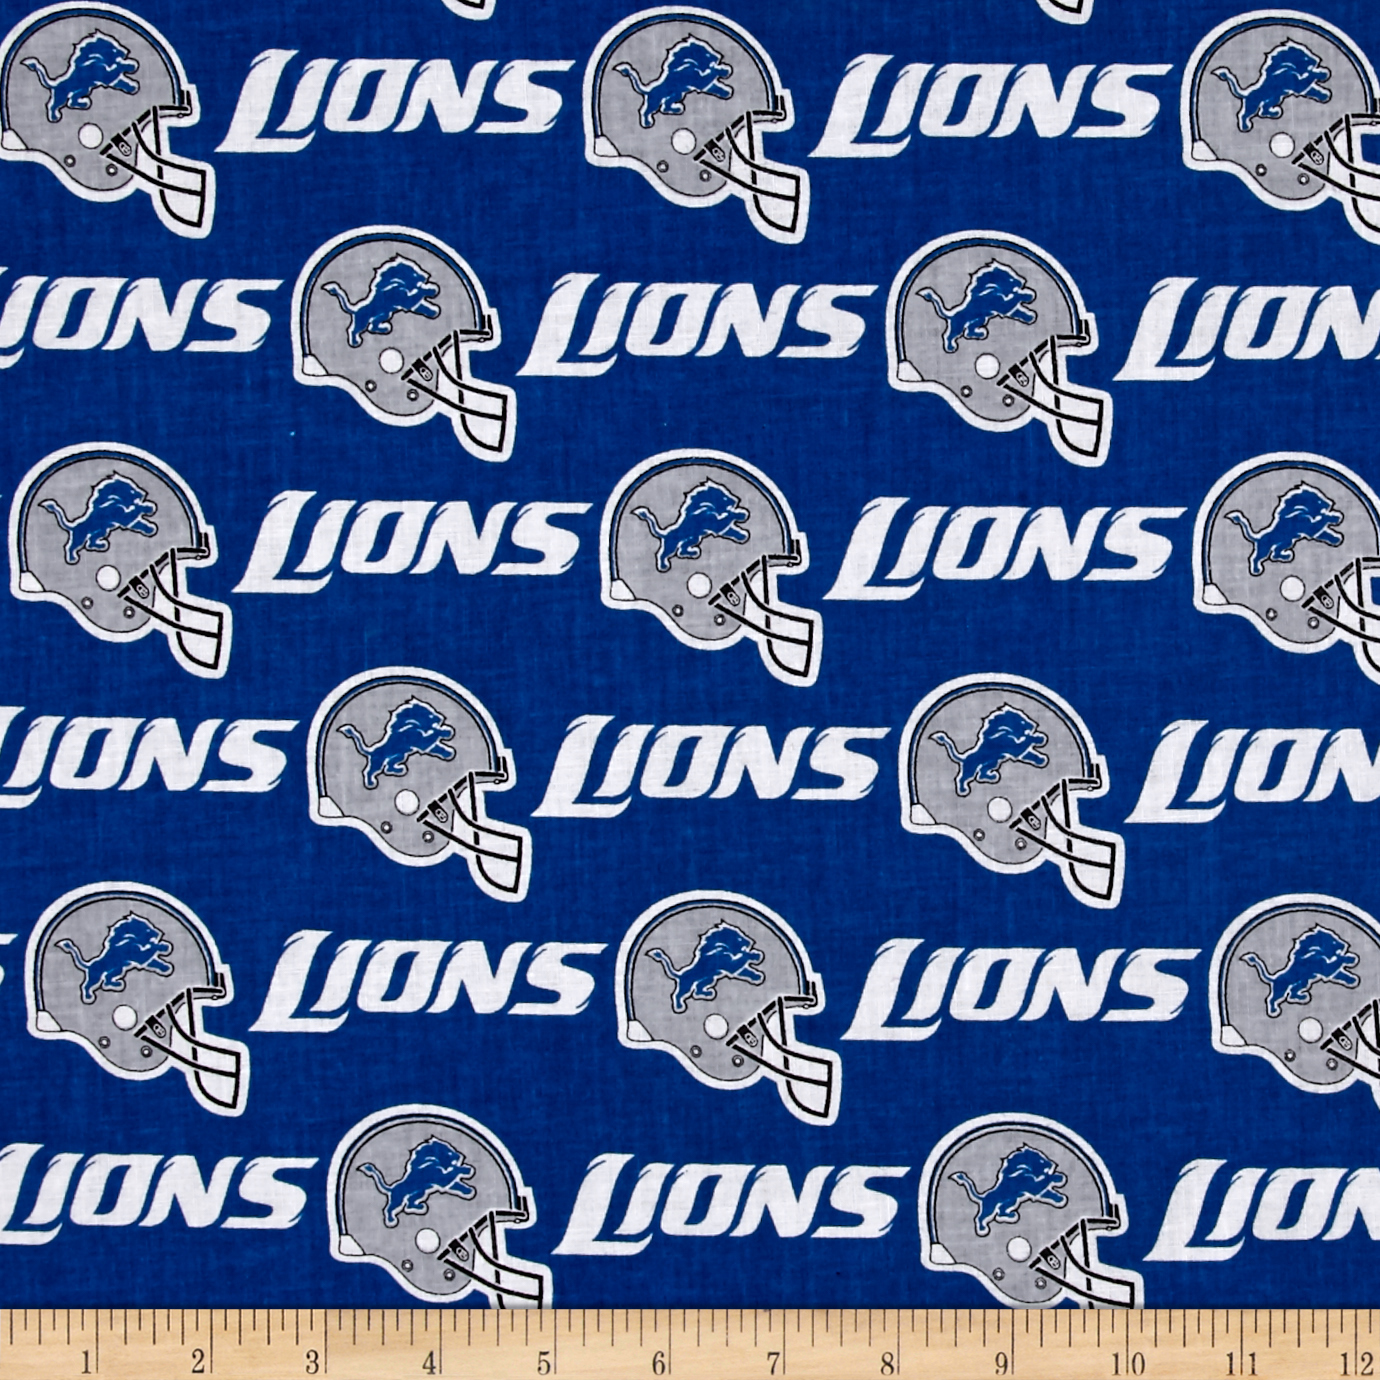 NFL Cotton Broadcloth Detroit Lions Dark Blue/White/Grey Fabric by Fabric Traditions in USA